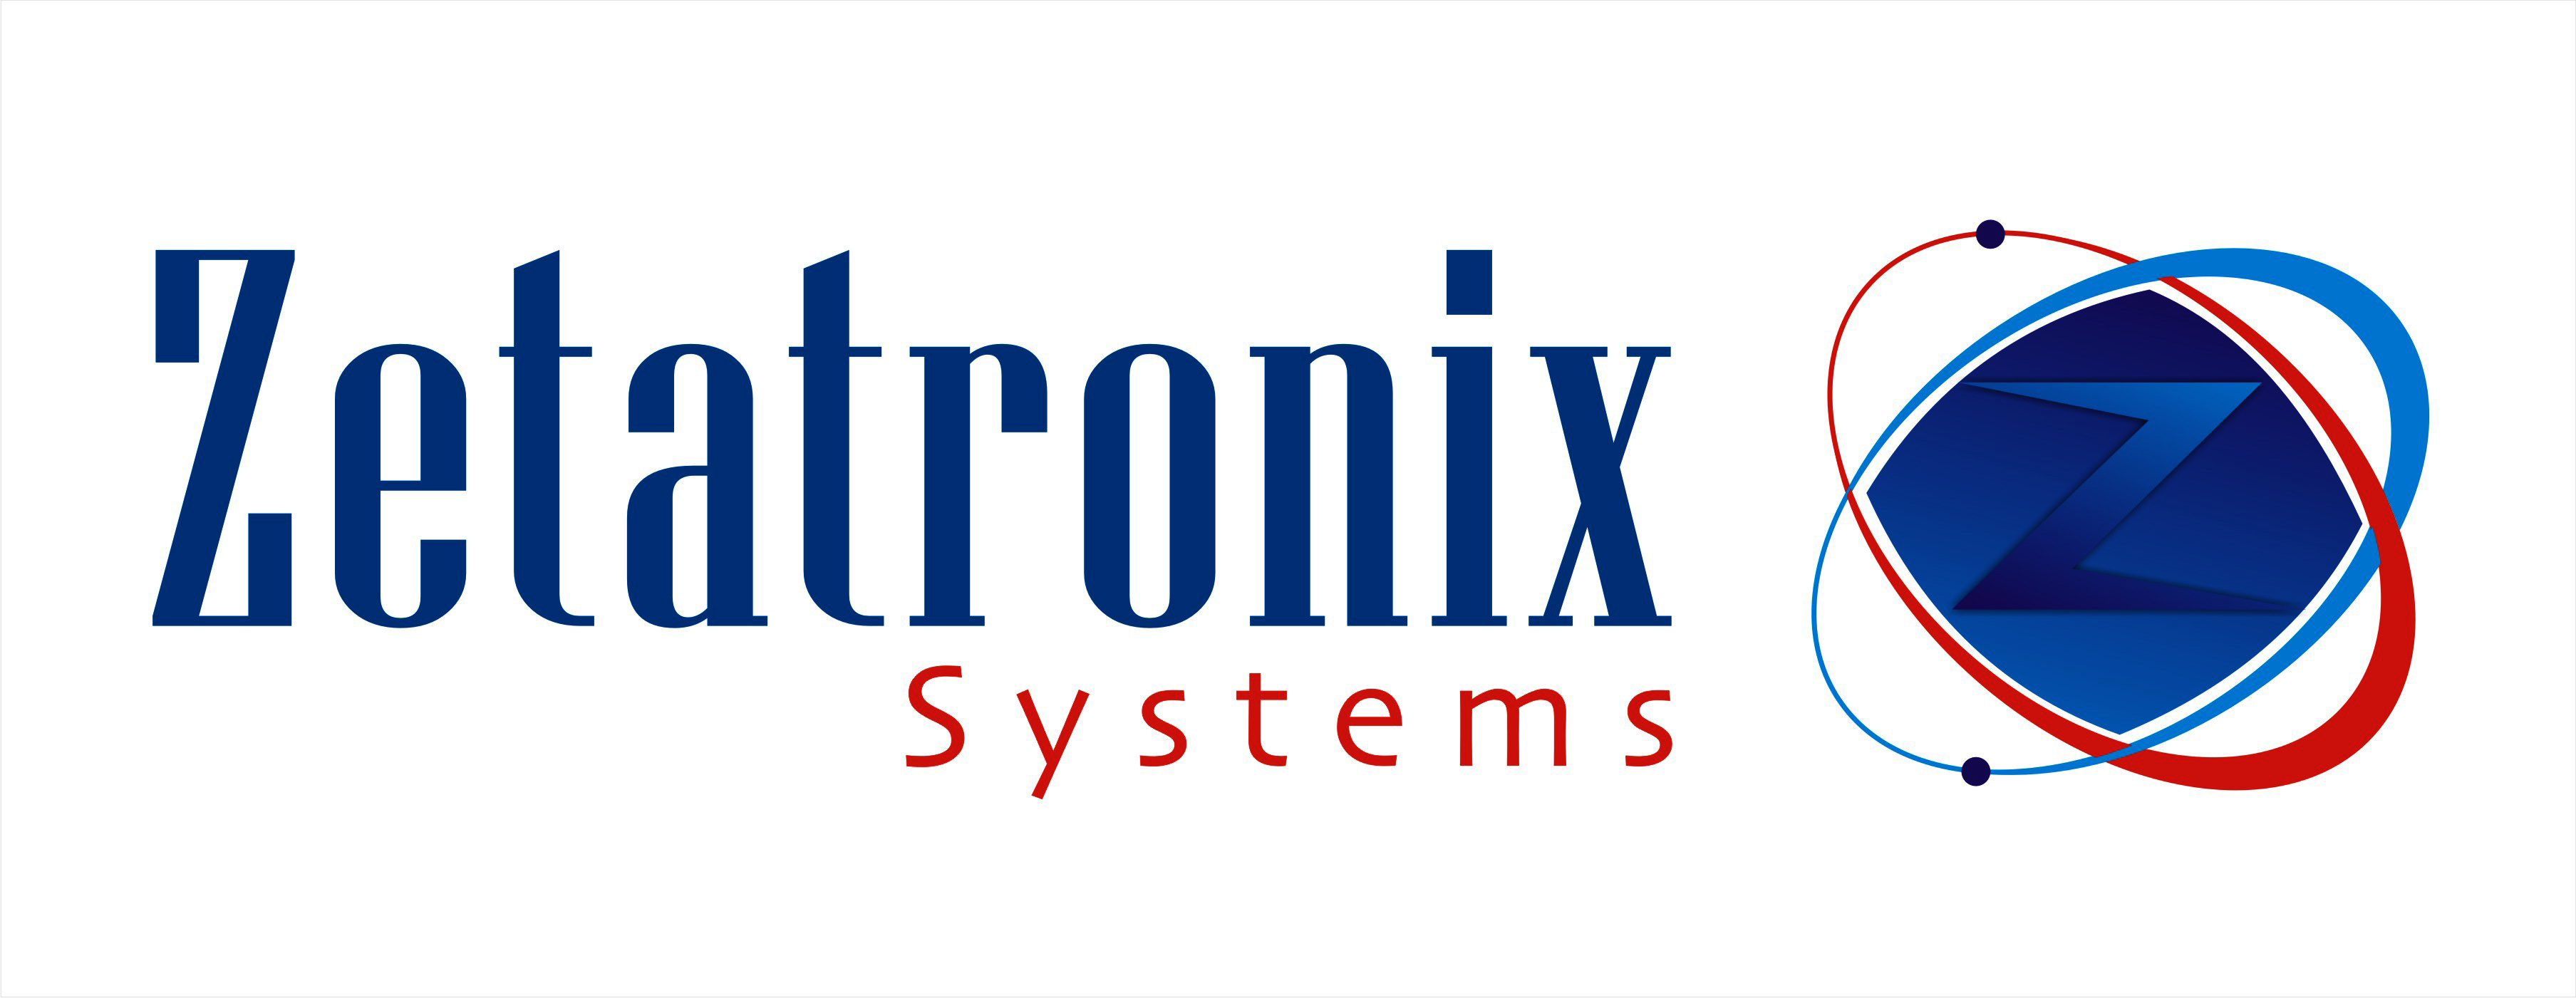 Lagos, Nigeria, Web design, software, programming, Zetatronix Systems